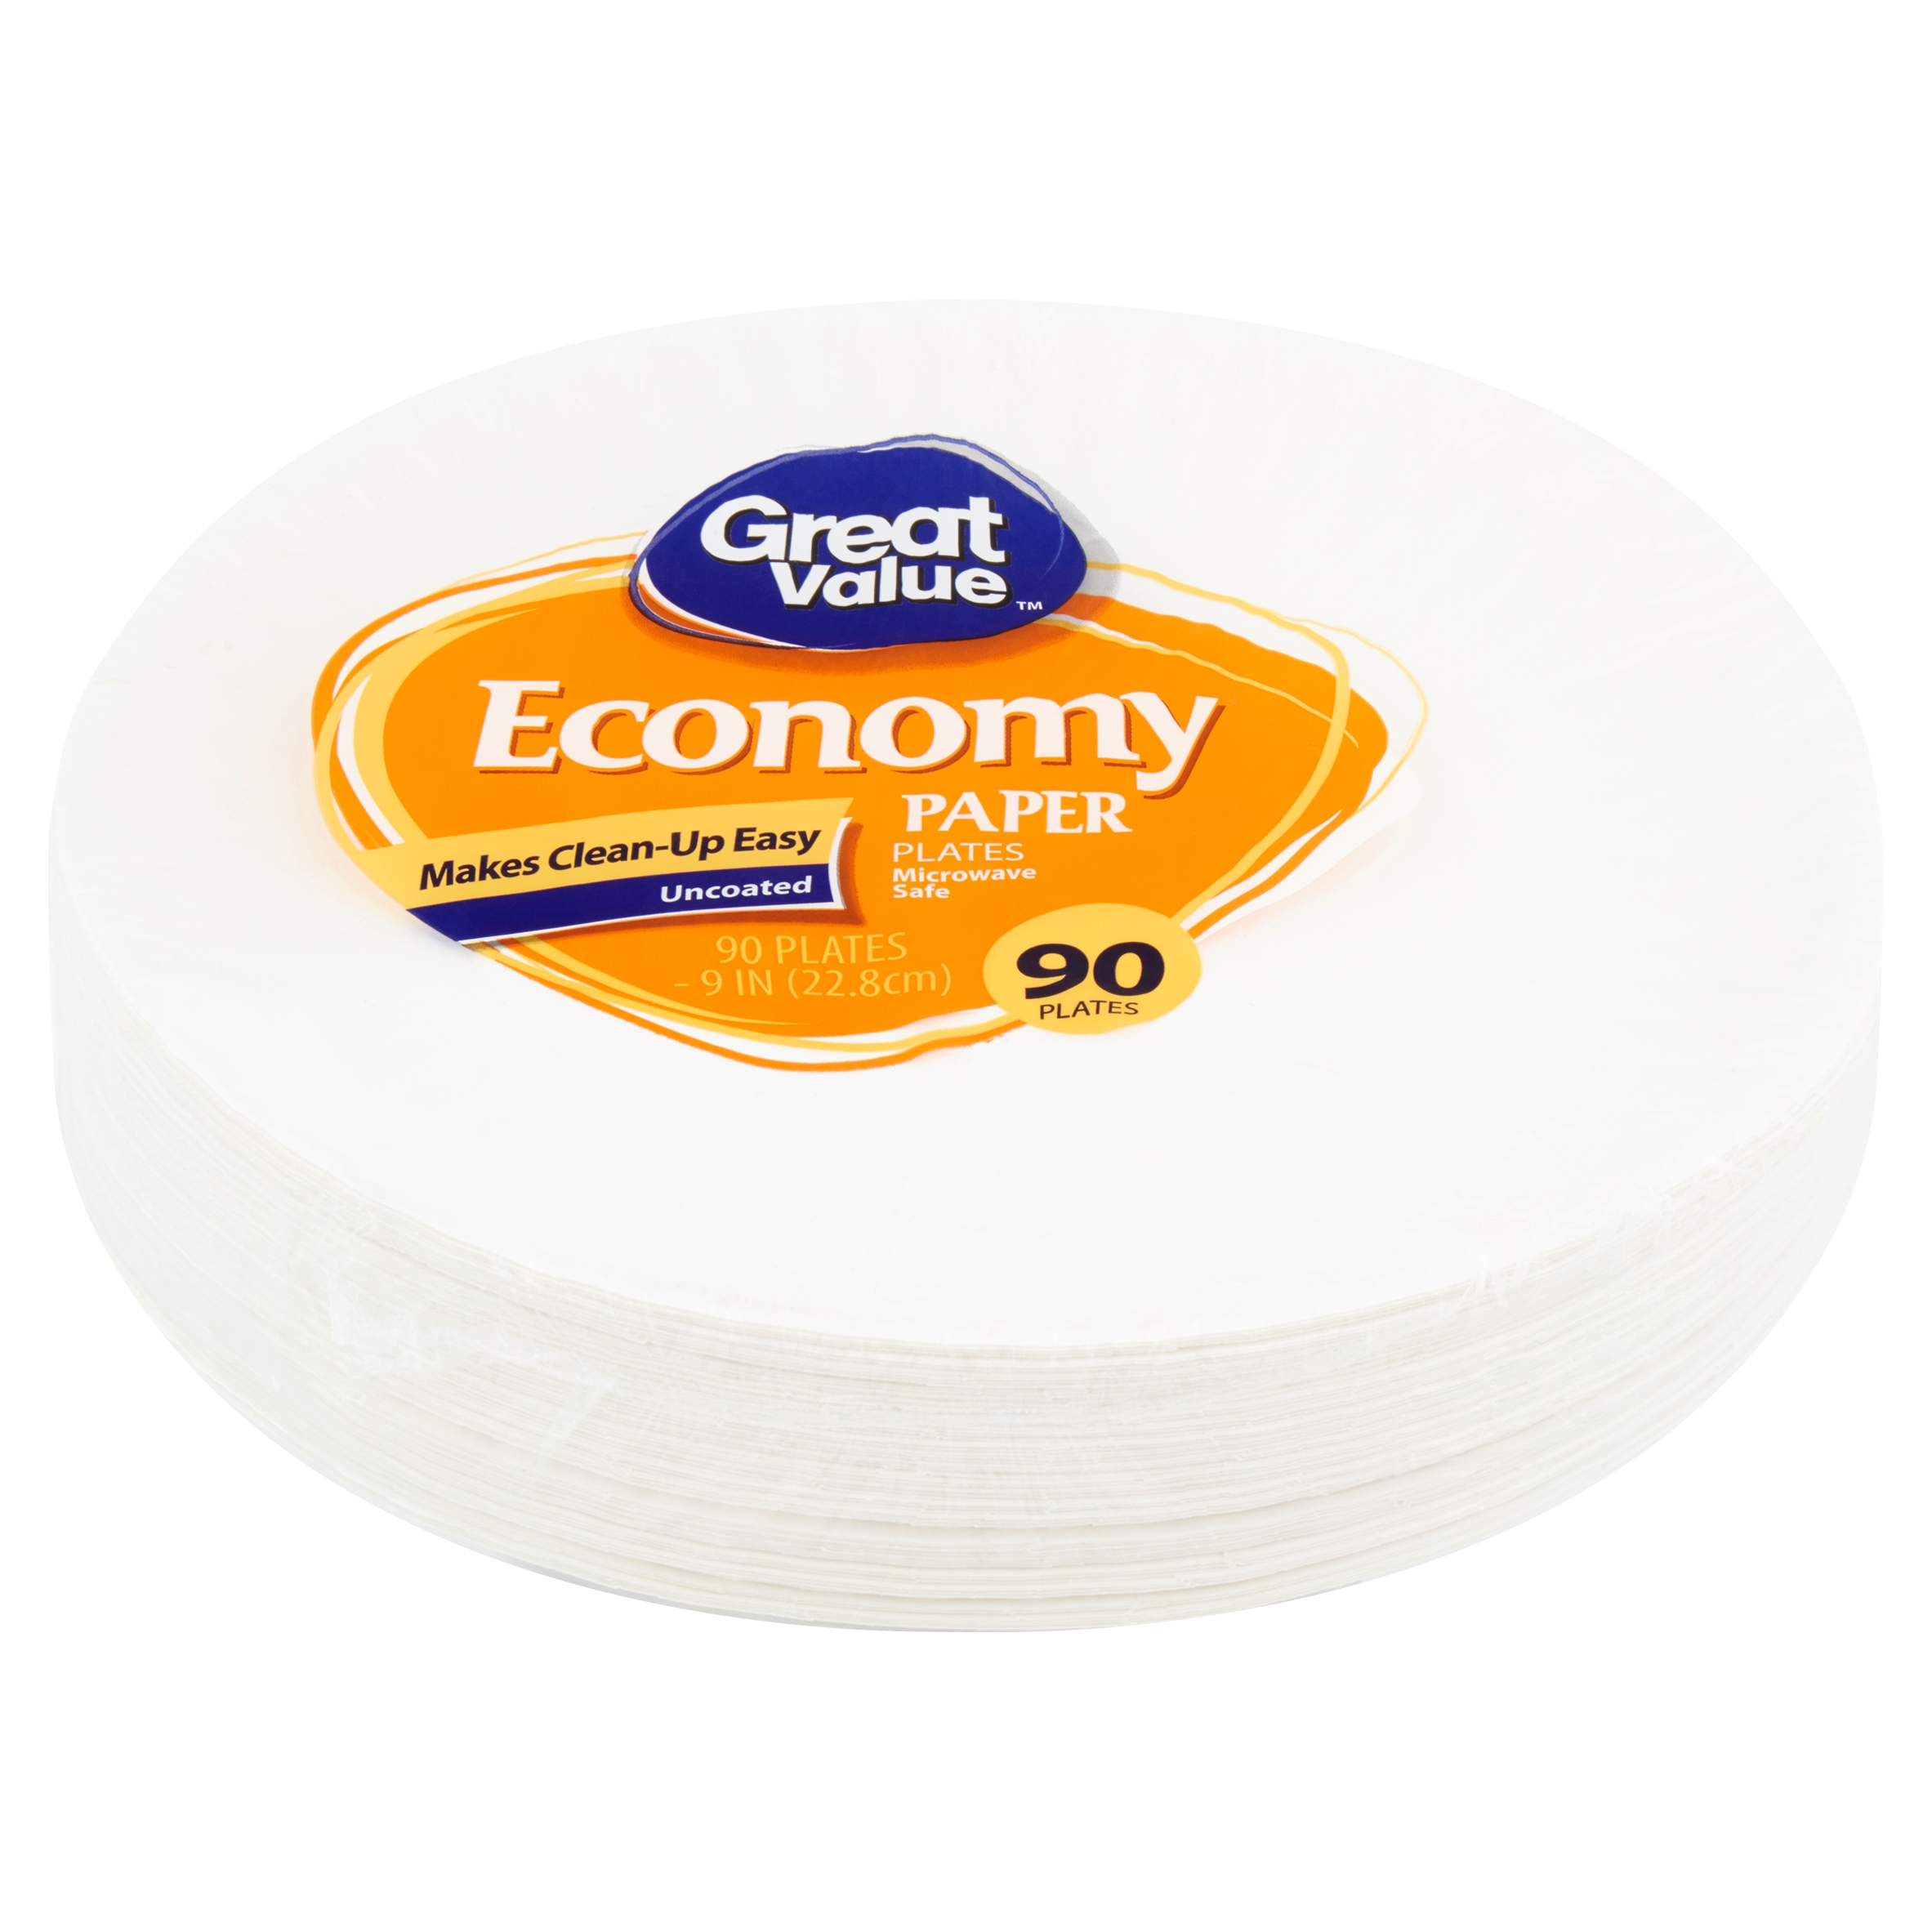 "Great Value Economy Paper Plates, 9"", 90 Count"